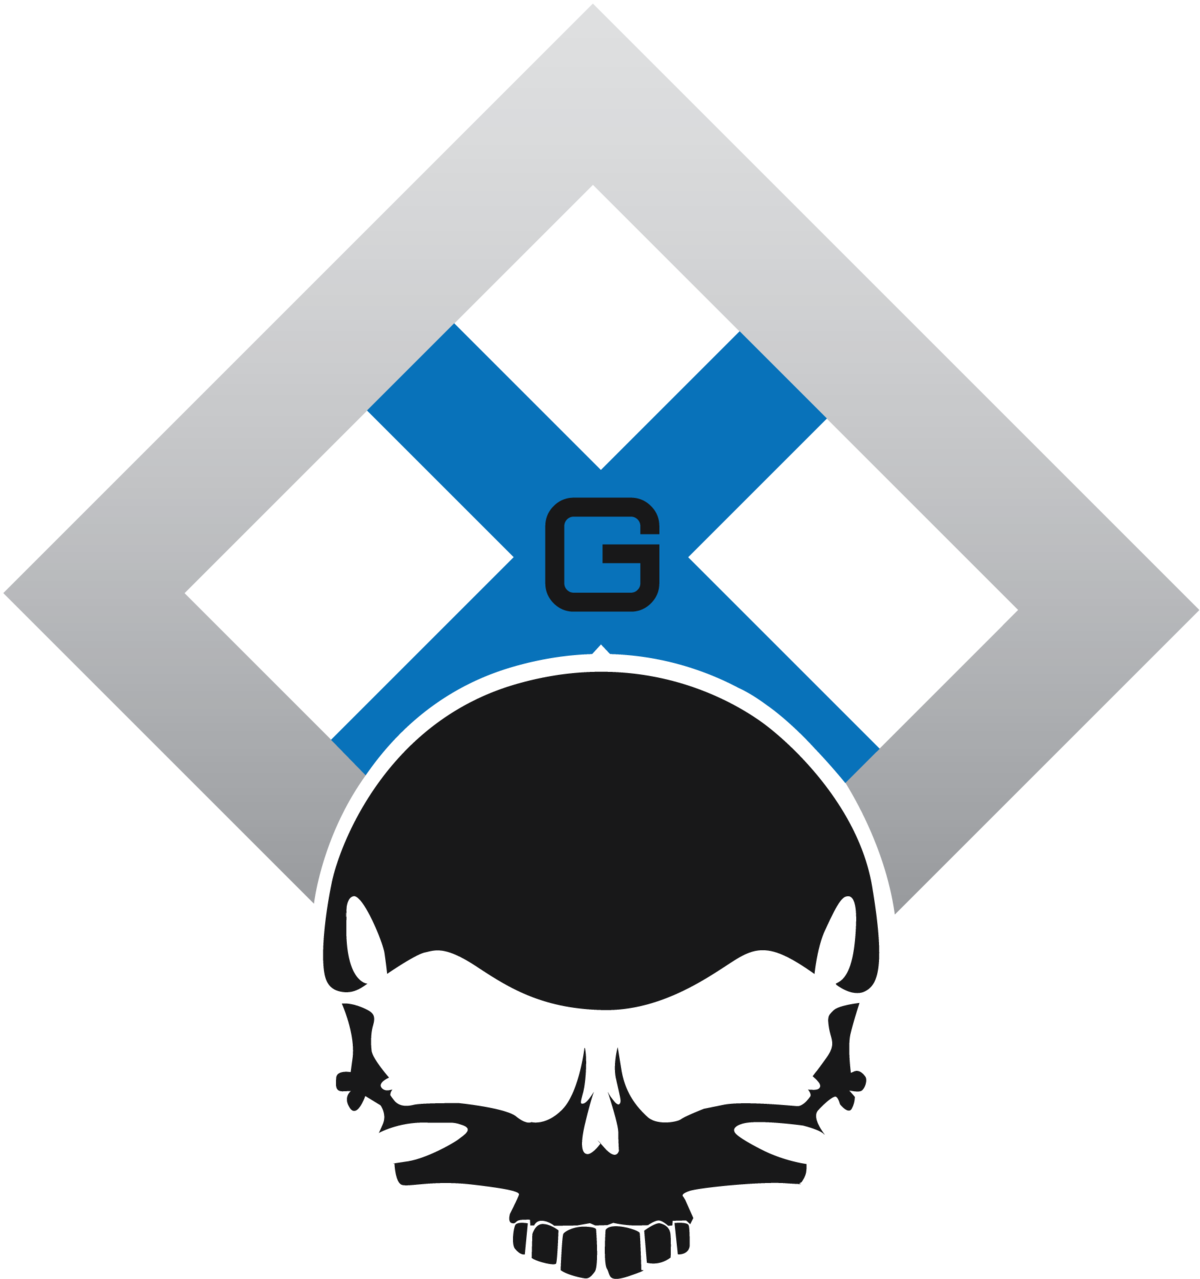 Gaming clipart xbox logo. Xgn competitive call of